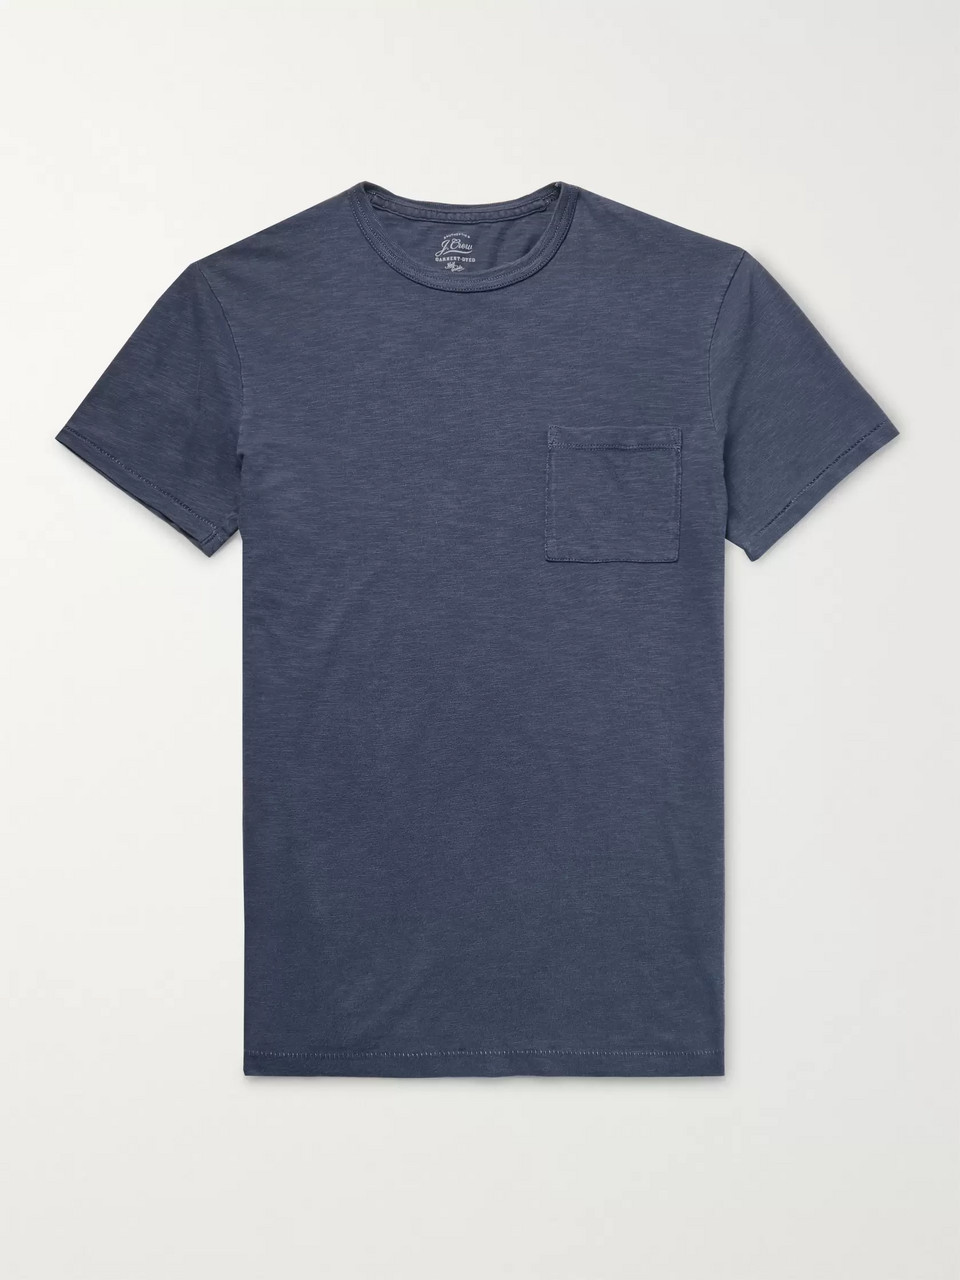 J.Crew Slim-Fit Garment-Dyed Slub Cotton-Jersey T-Shirt